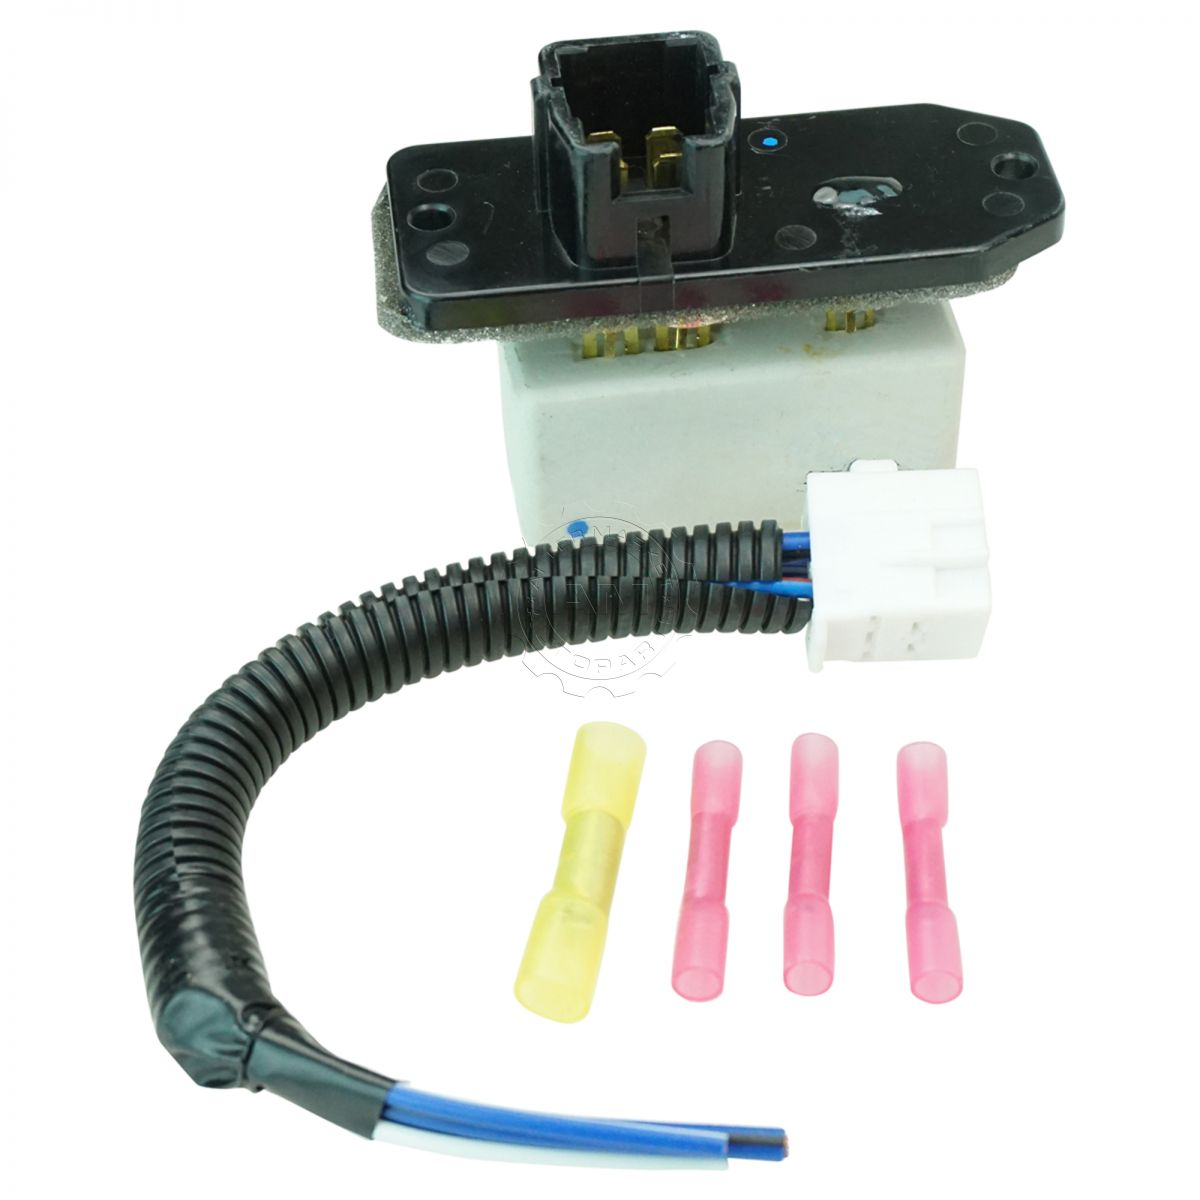 Dorman Blower Motor Resistor With Harness Repair Kit for 98-02 Toyota  Corolla